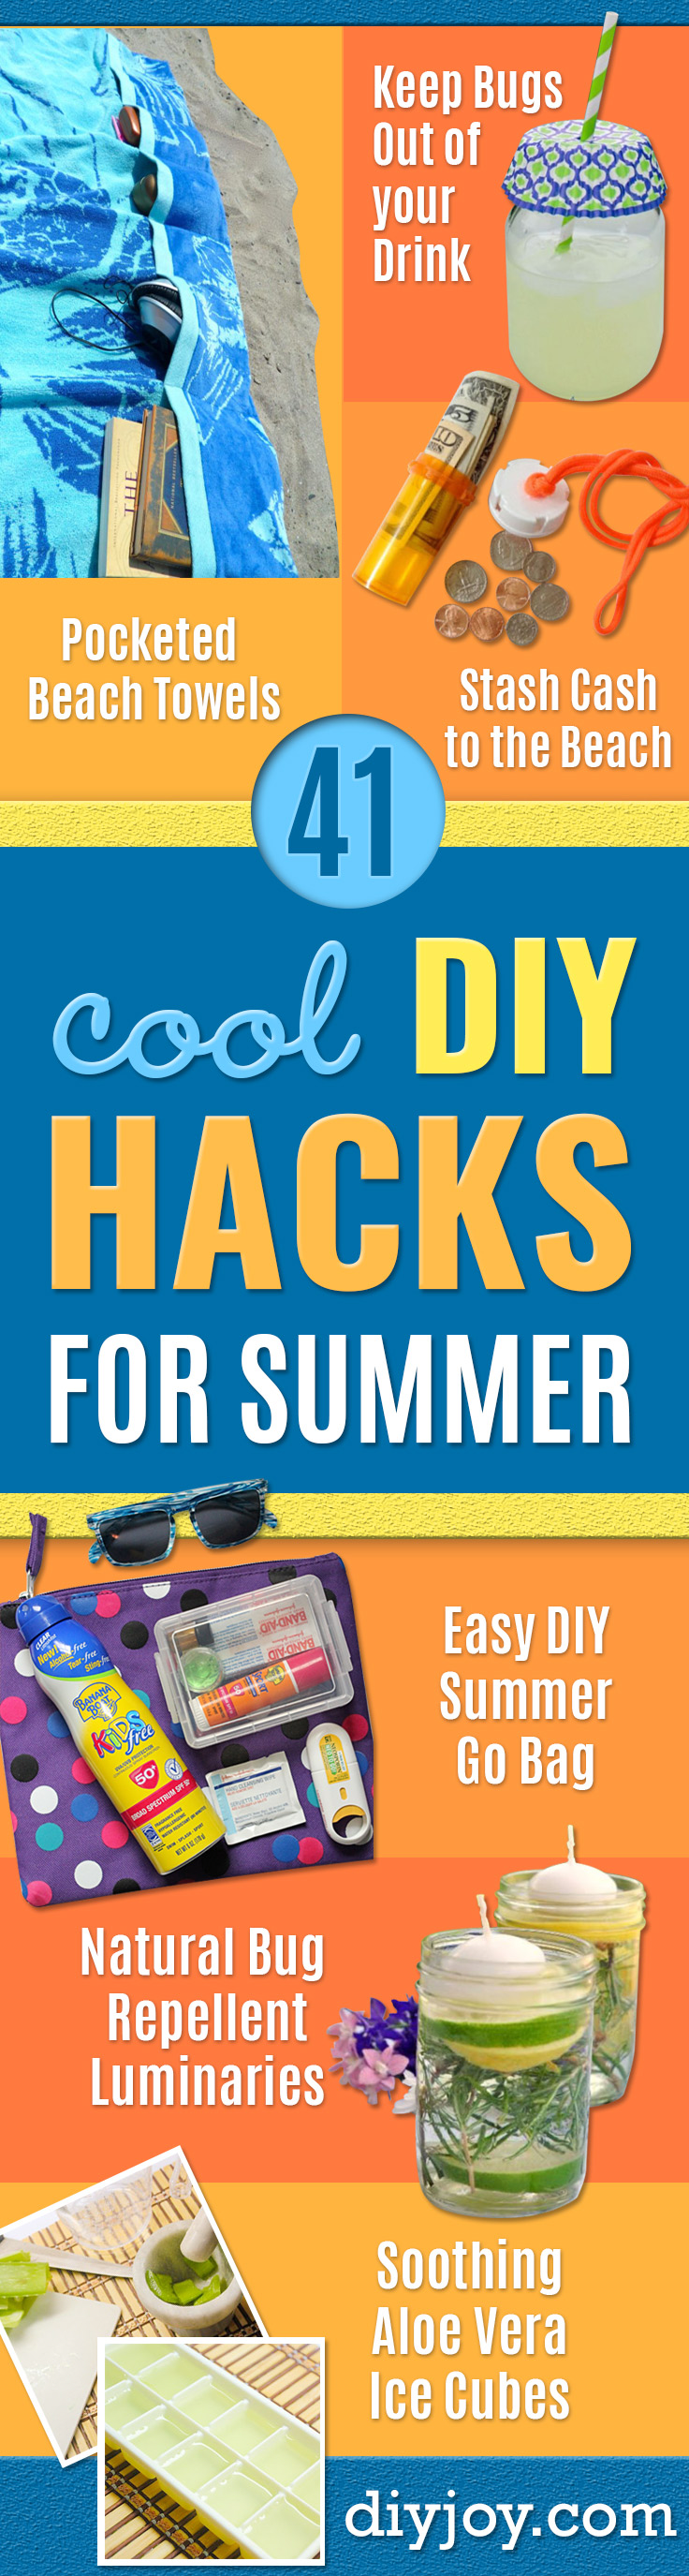 DIY Hacks for Summer - Easy Projects to Try This Summer To Get Organized, Spend Time Outdoors, Play With The Kids, Stay Cool In The Heat - Tips and Tricks to Make Summertime Awesome - Crafts and Home Decor by DIY JOY http://diyjoy.com/diy-hacks-summer